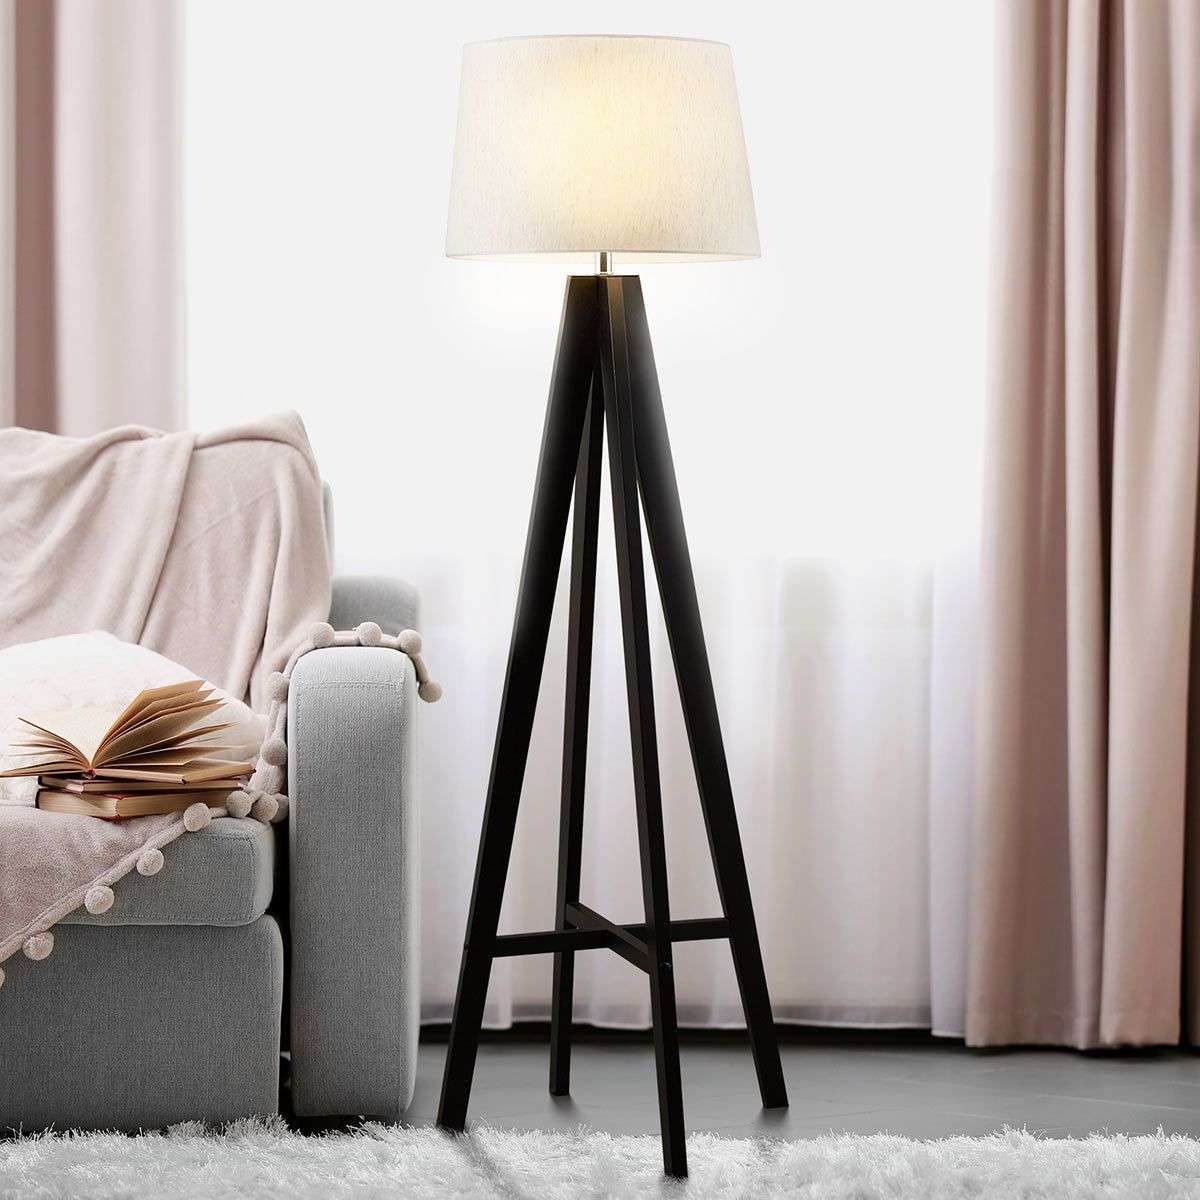 Maura fabric floor lamp with wooden base | Lights.ie